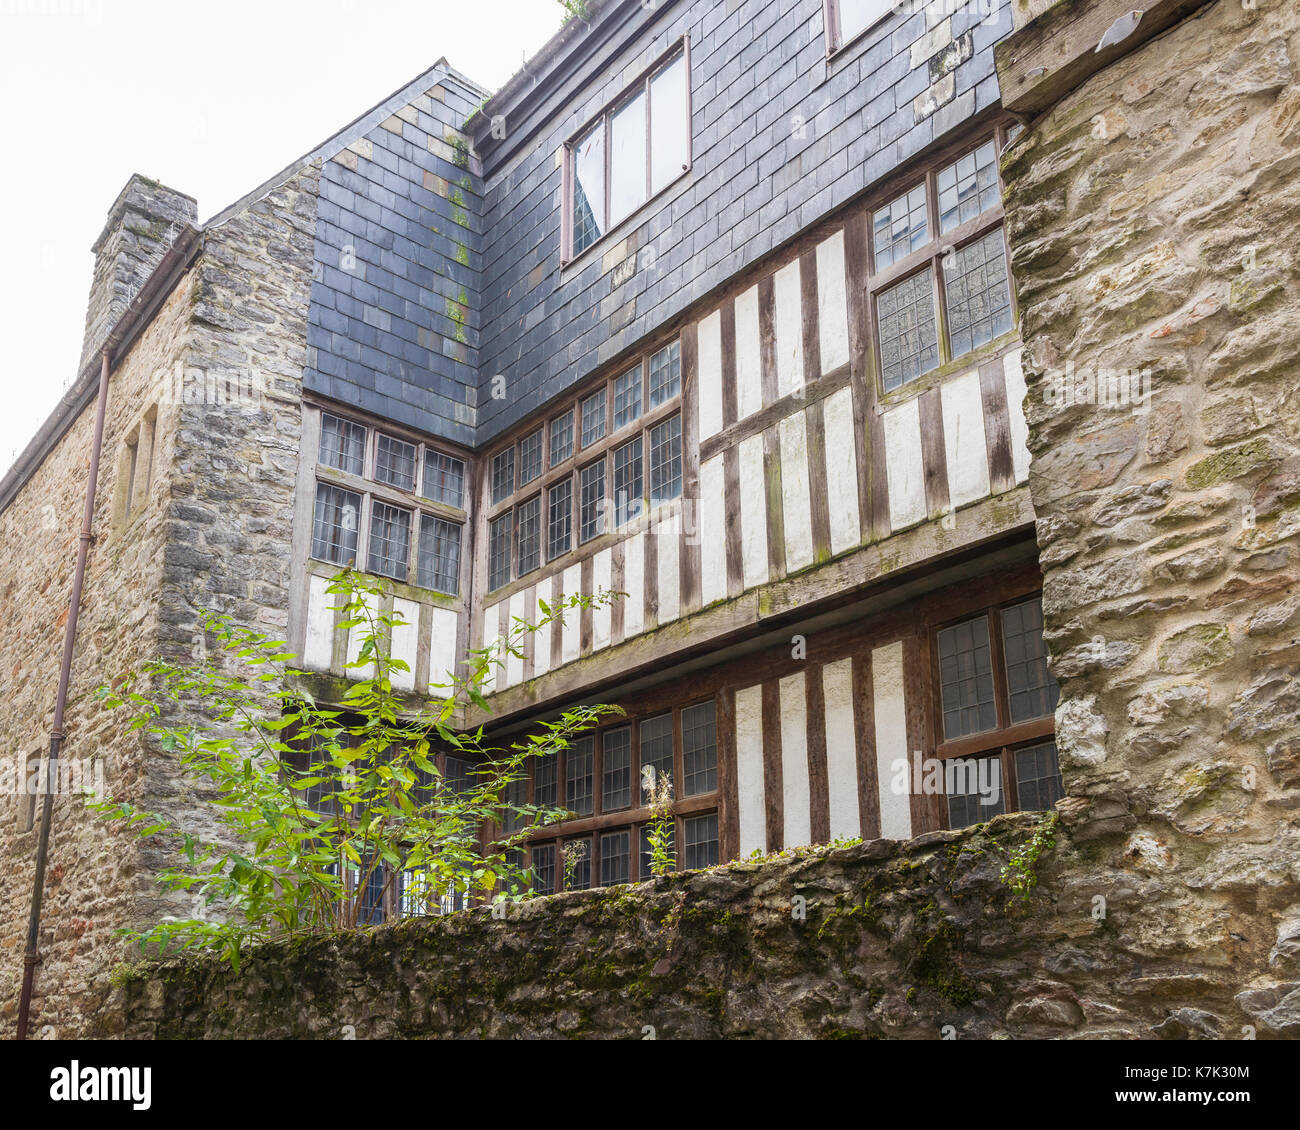 The 16th/17th century Merchant's House Museum in the historic Barbican area of Plymouth, Devon, UK - Stock Image